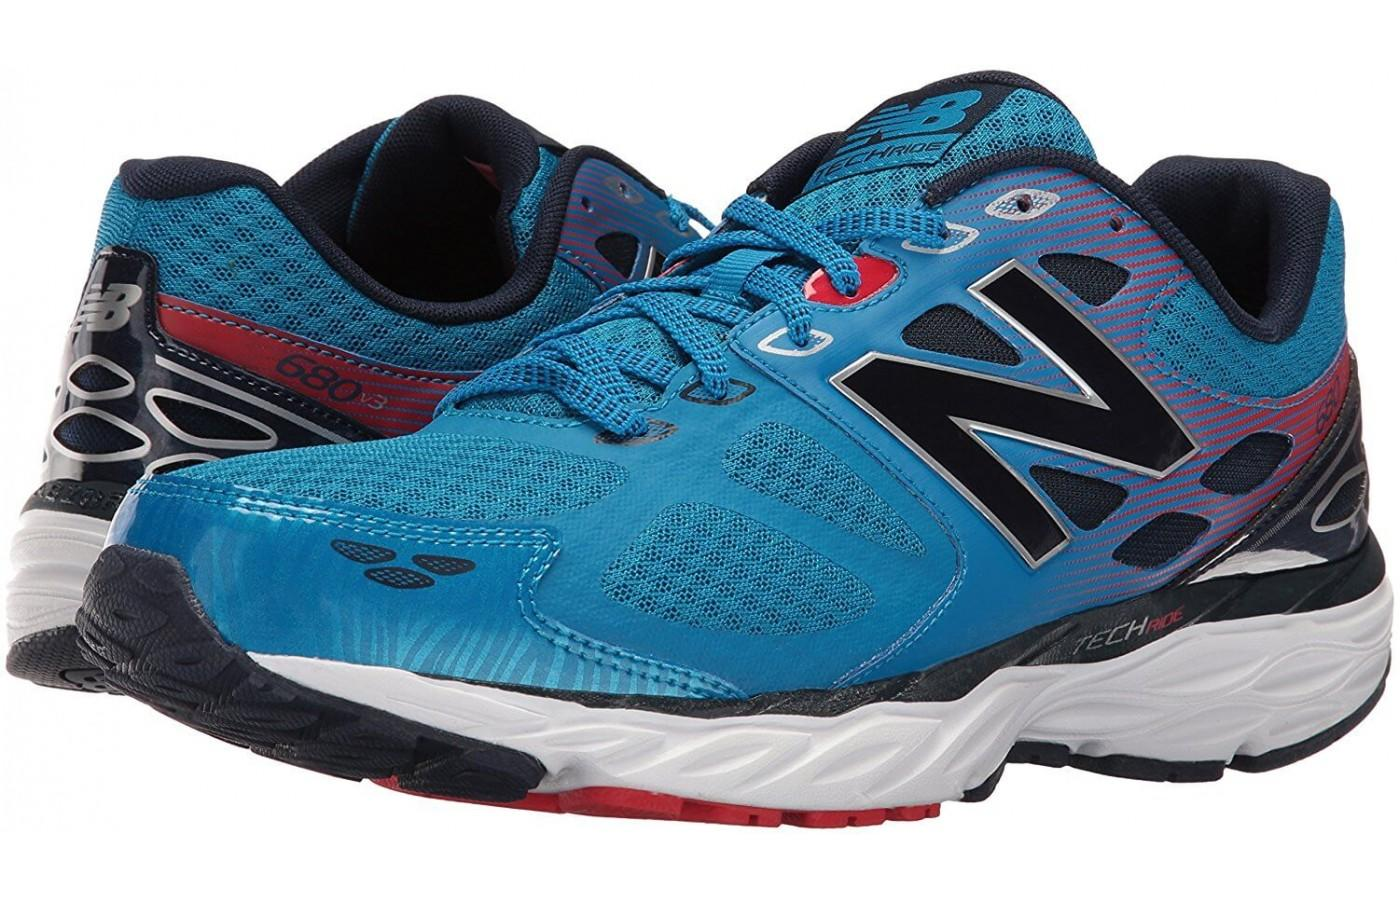 the New Balance 680 v3 is an affordable stability shoe